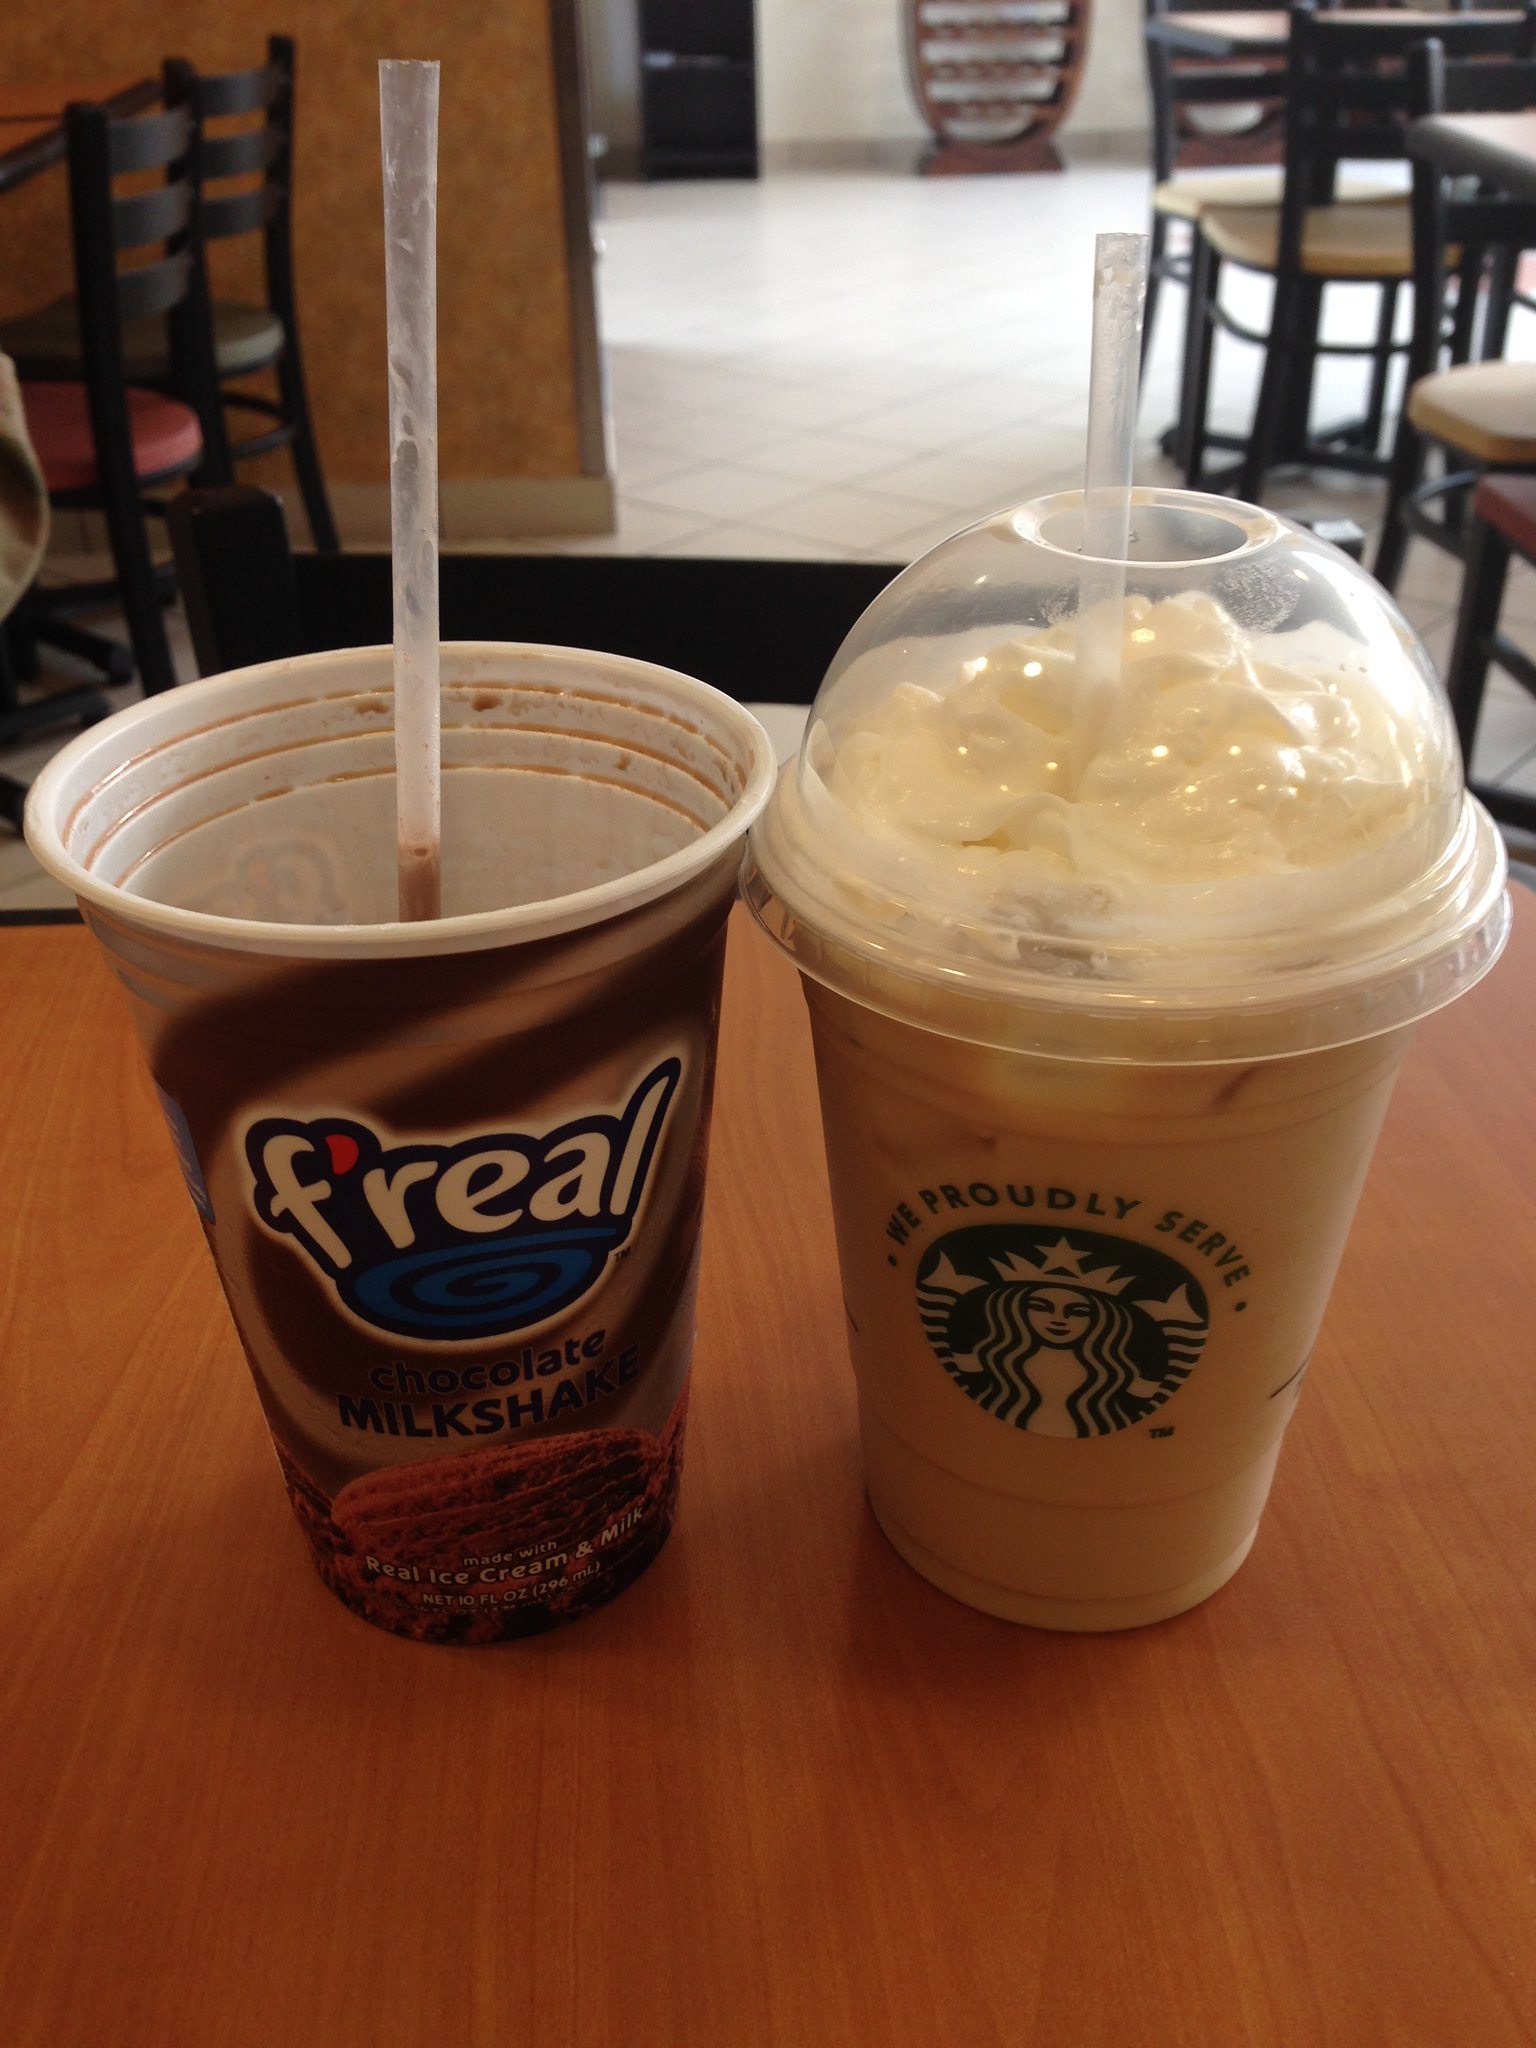 f'real and Starbucks